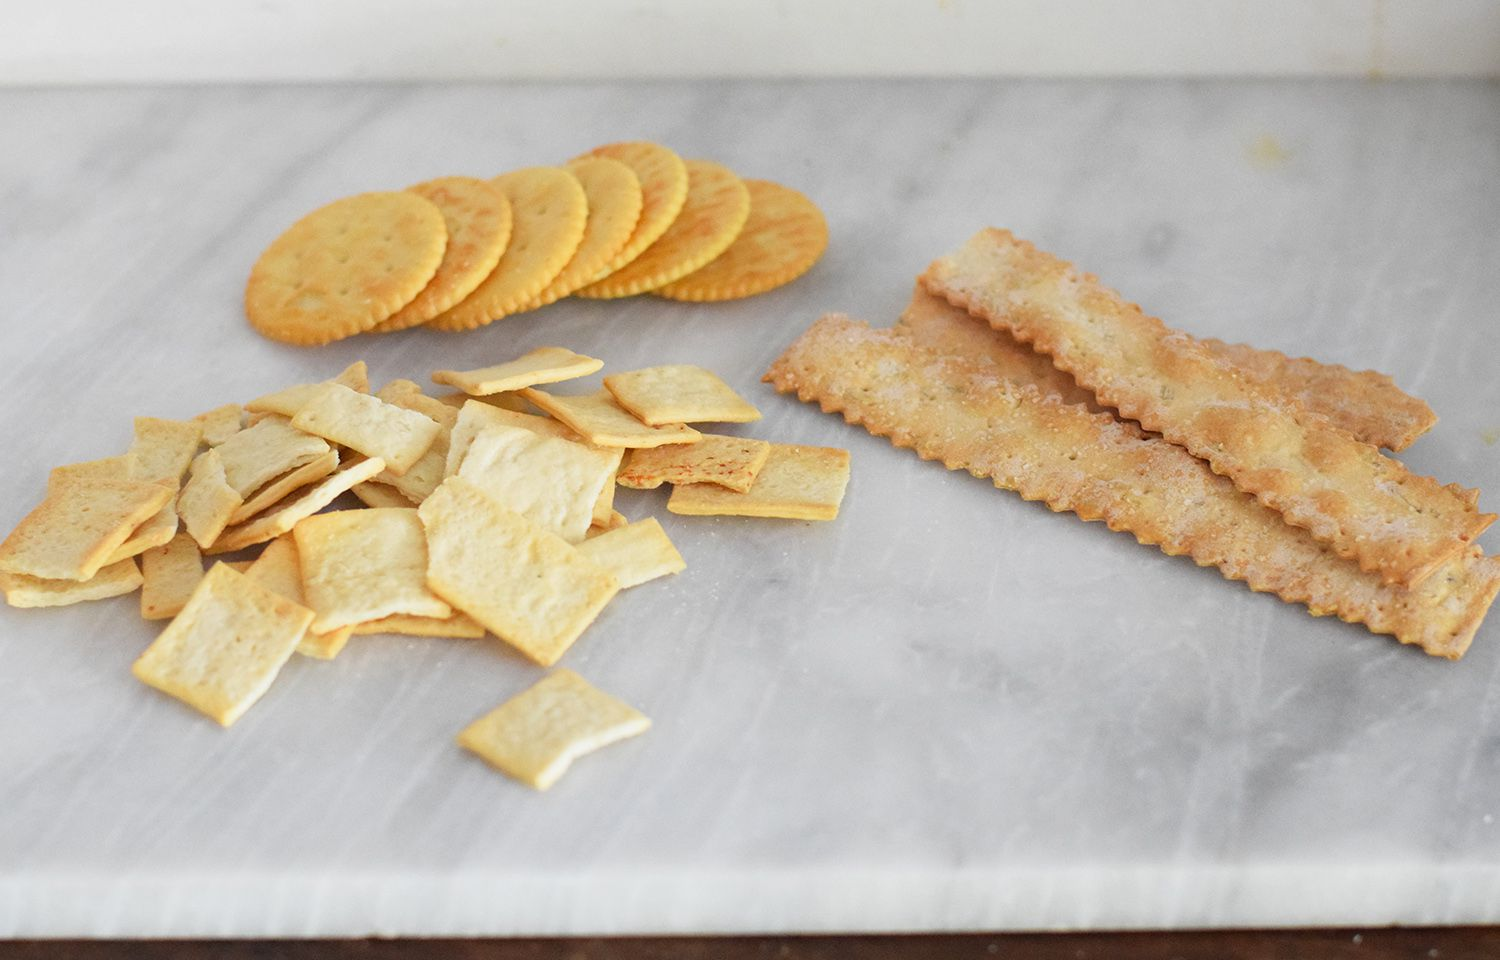 Various crackers and breadsticks